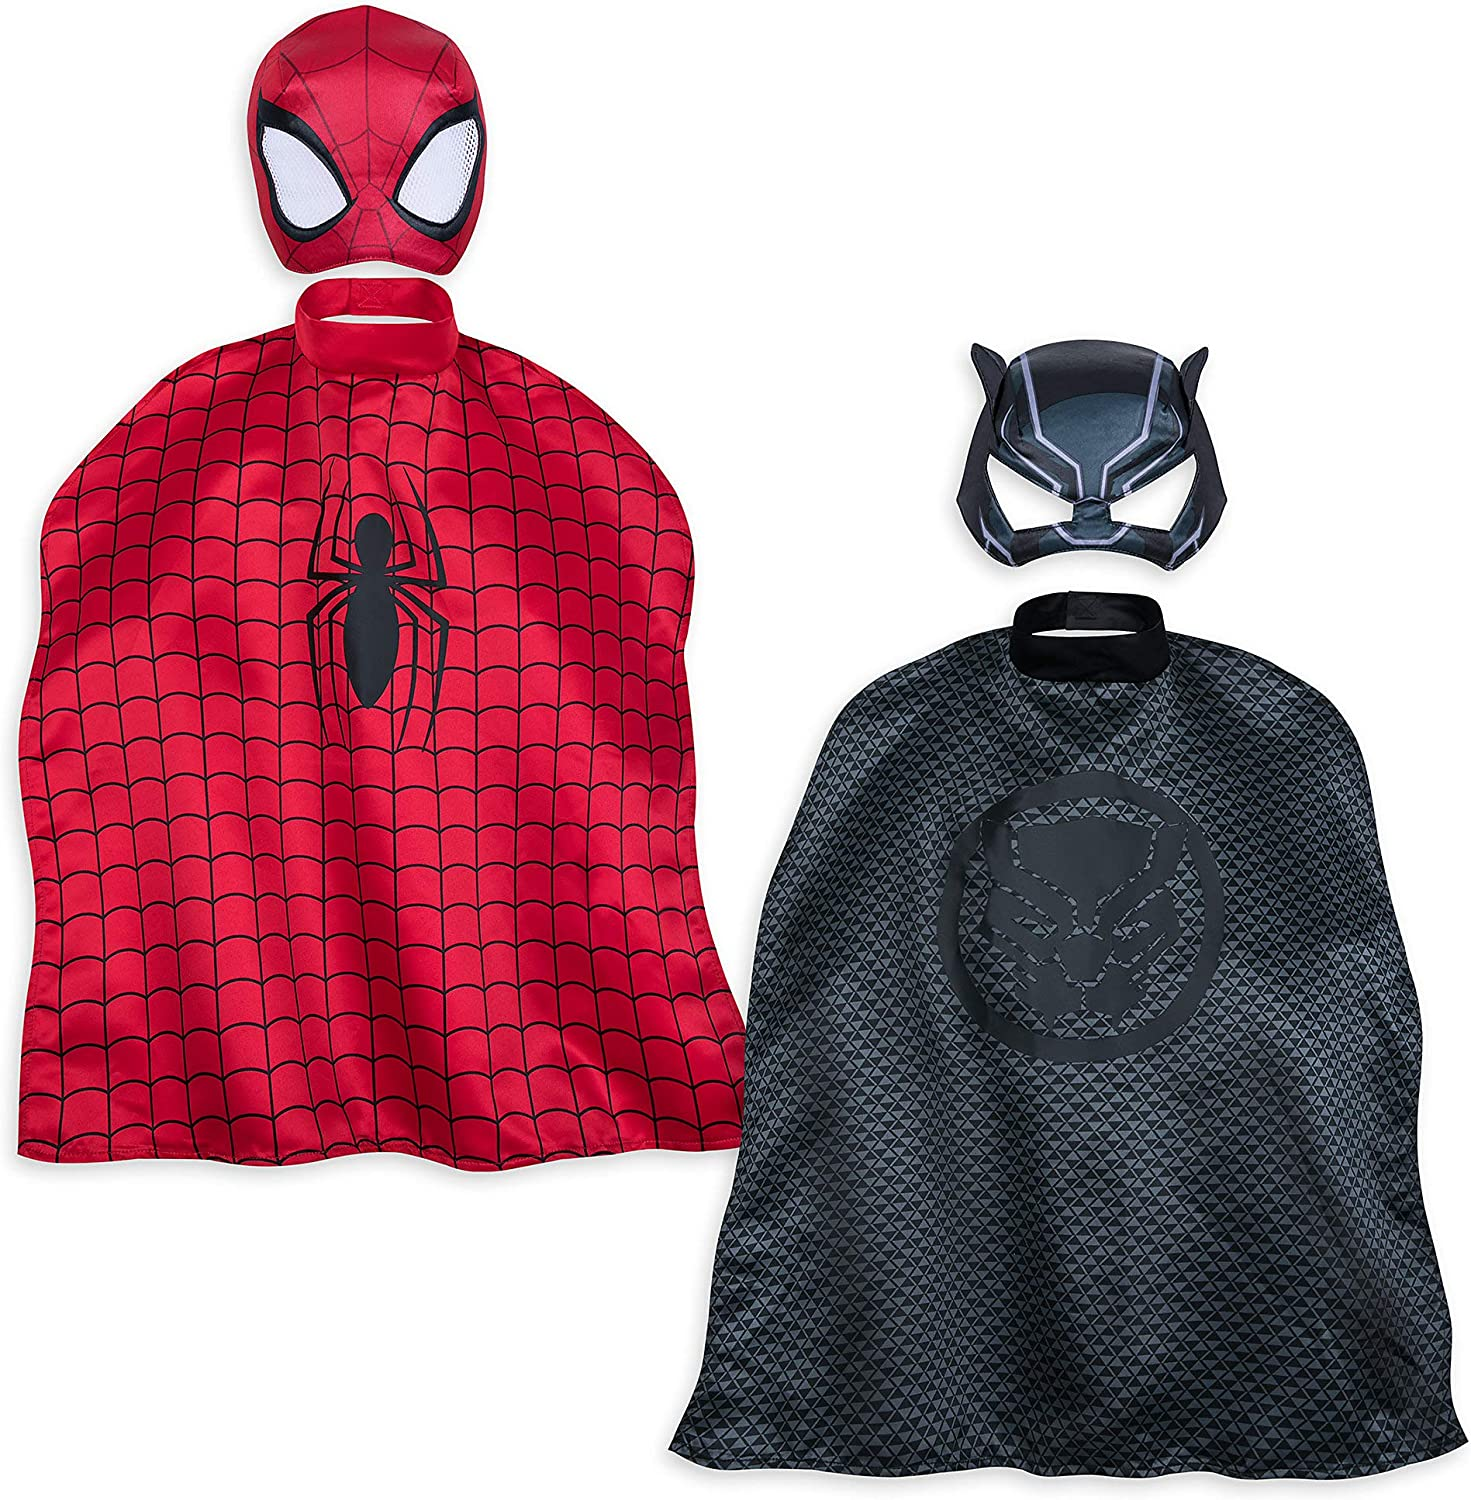 Superhero Cape for Kids-Spiderman Cape and Mask Cosplay Costumes Set for Kids 3 Sets